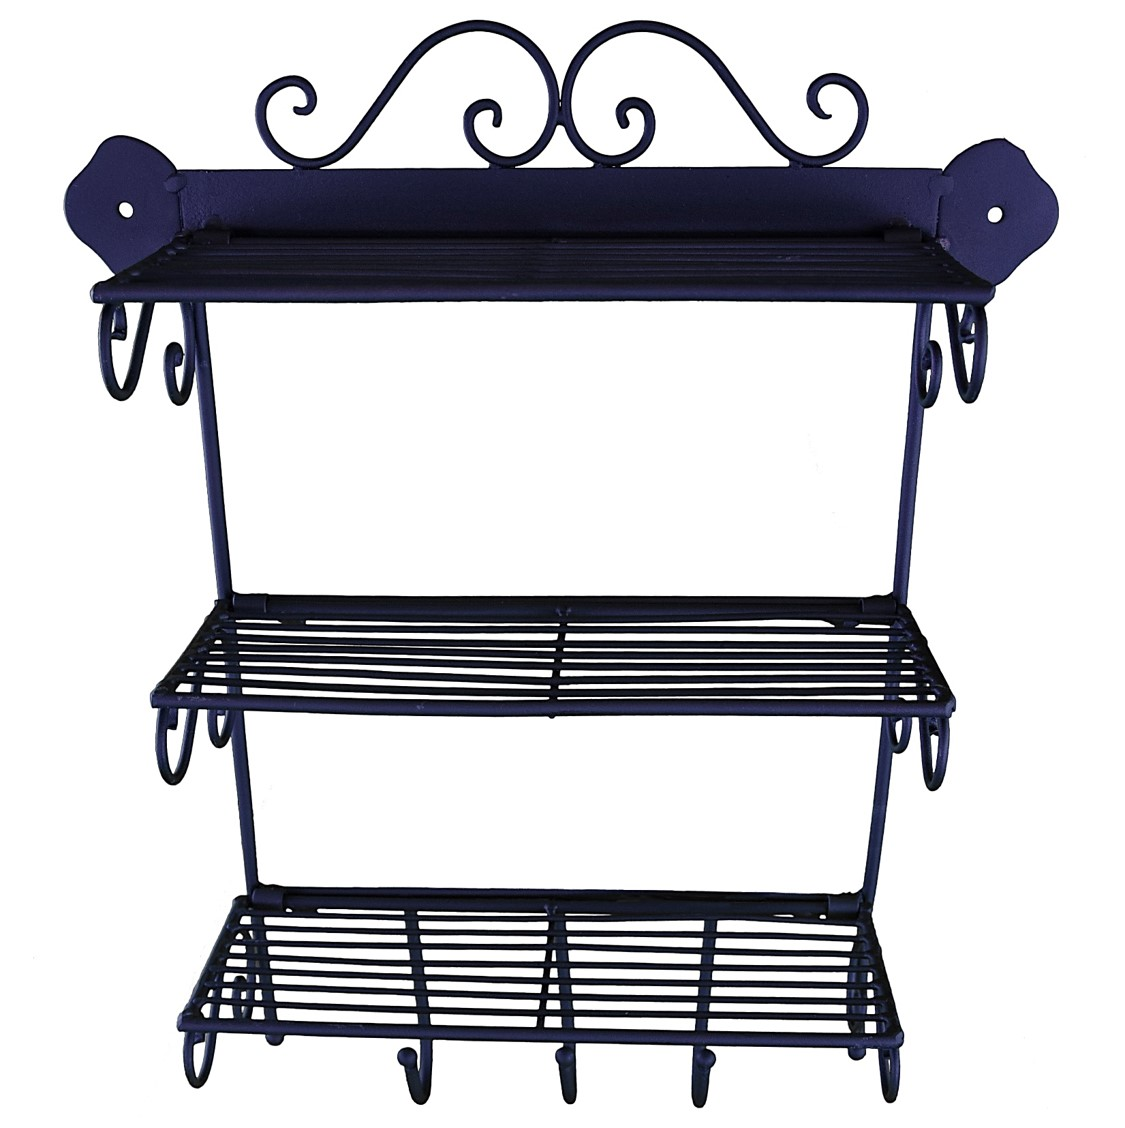 etagere murale cuisine fer forge style ancienne 40x33cm ebay. Black Bedroom Furniture Sets. Home Design Ideas